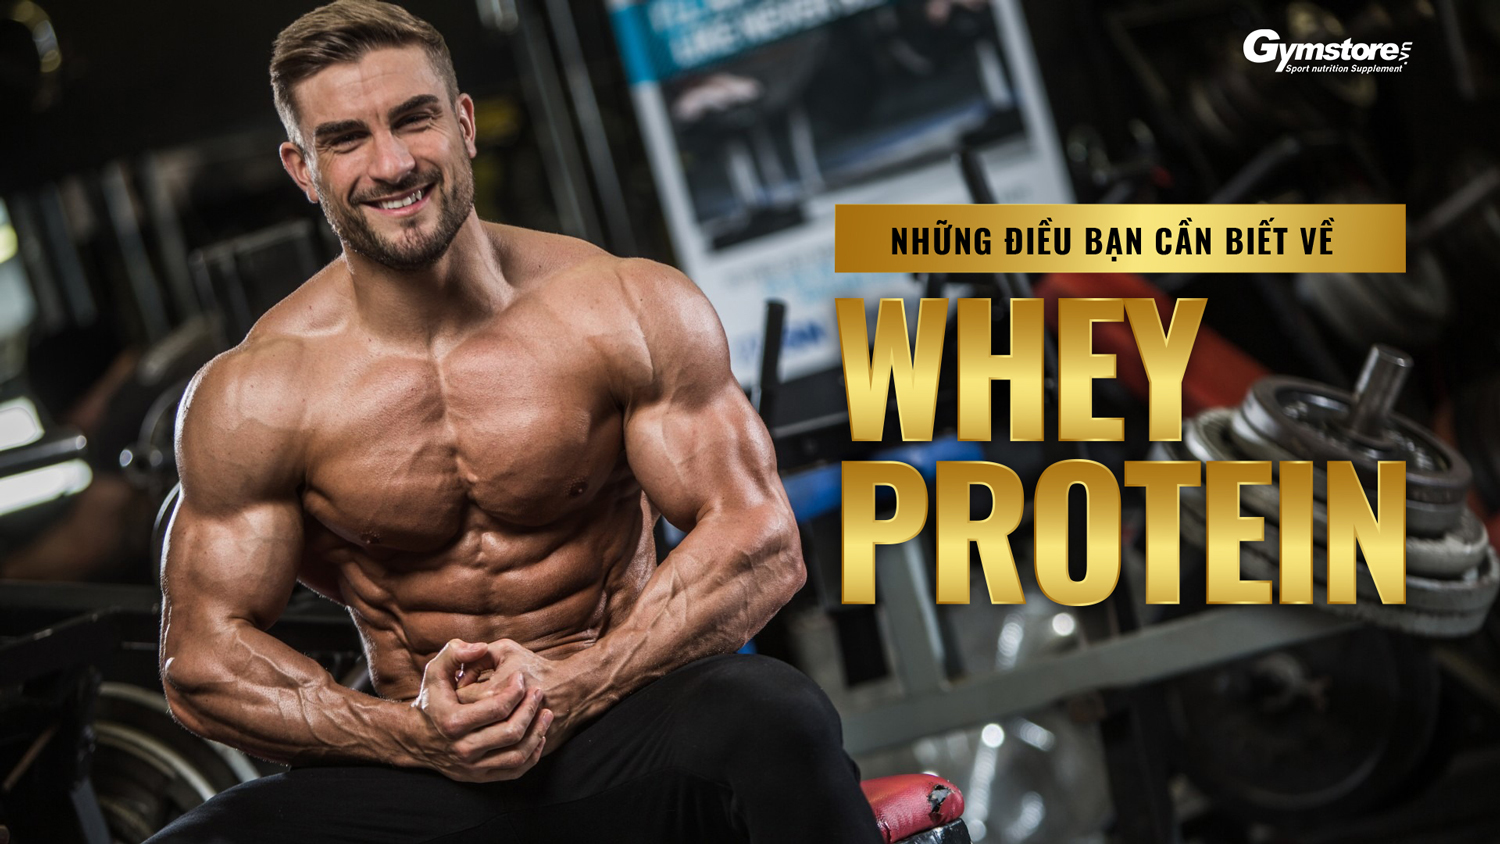 Whey-Protein-la-gi-nhung-dieu-ban-can-biet-ve-whey-protein-gymstore